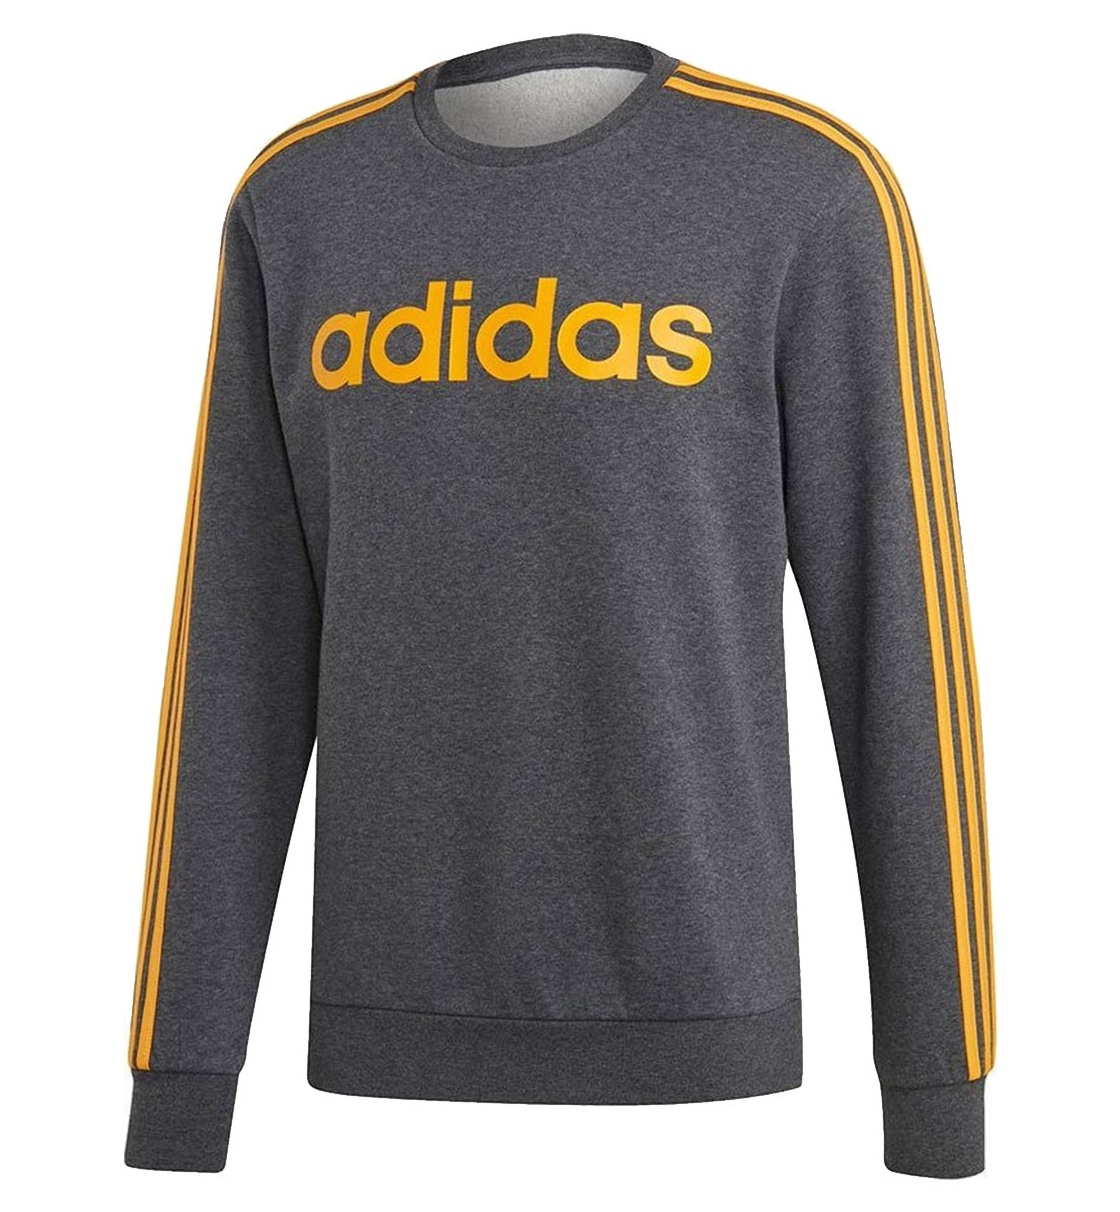 Adidas Fw19 Essentials 3 Stripes Crewneck Fleece